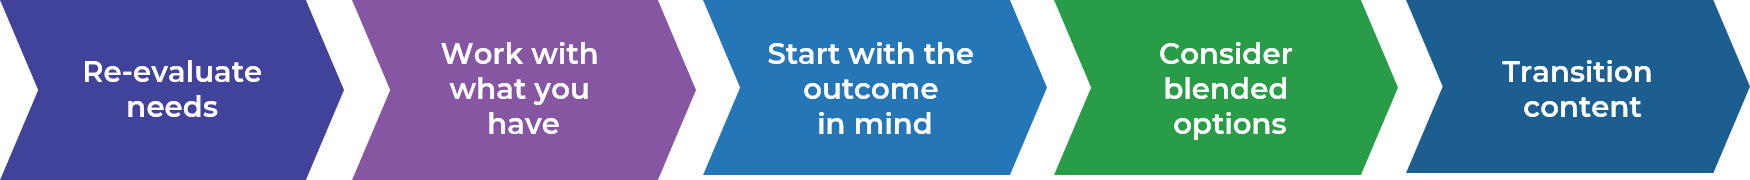 Re-evaluate needs, work with what you have, start with the outcome in mind, consider blended options, and transition content.